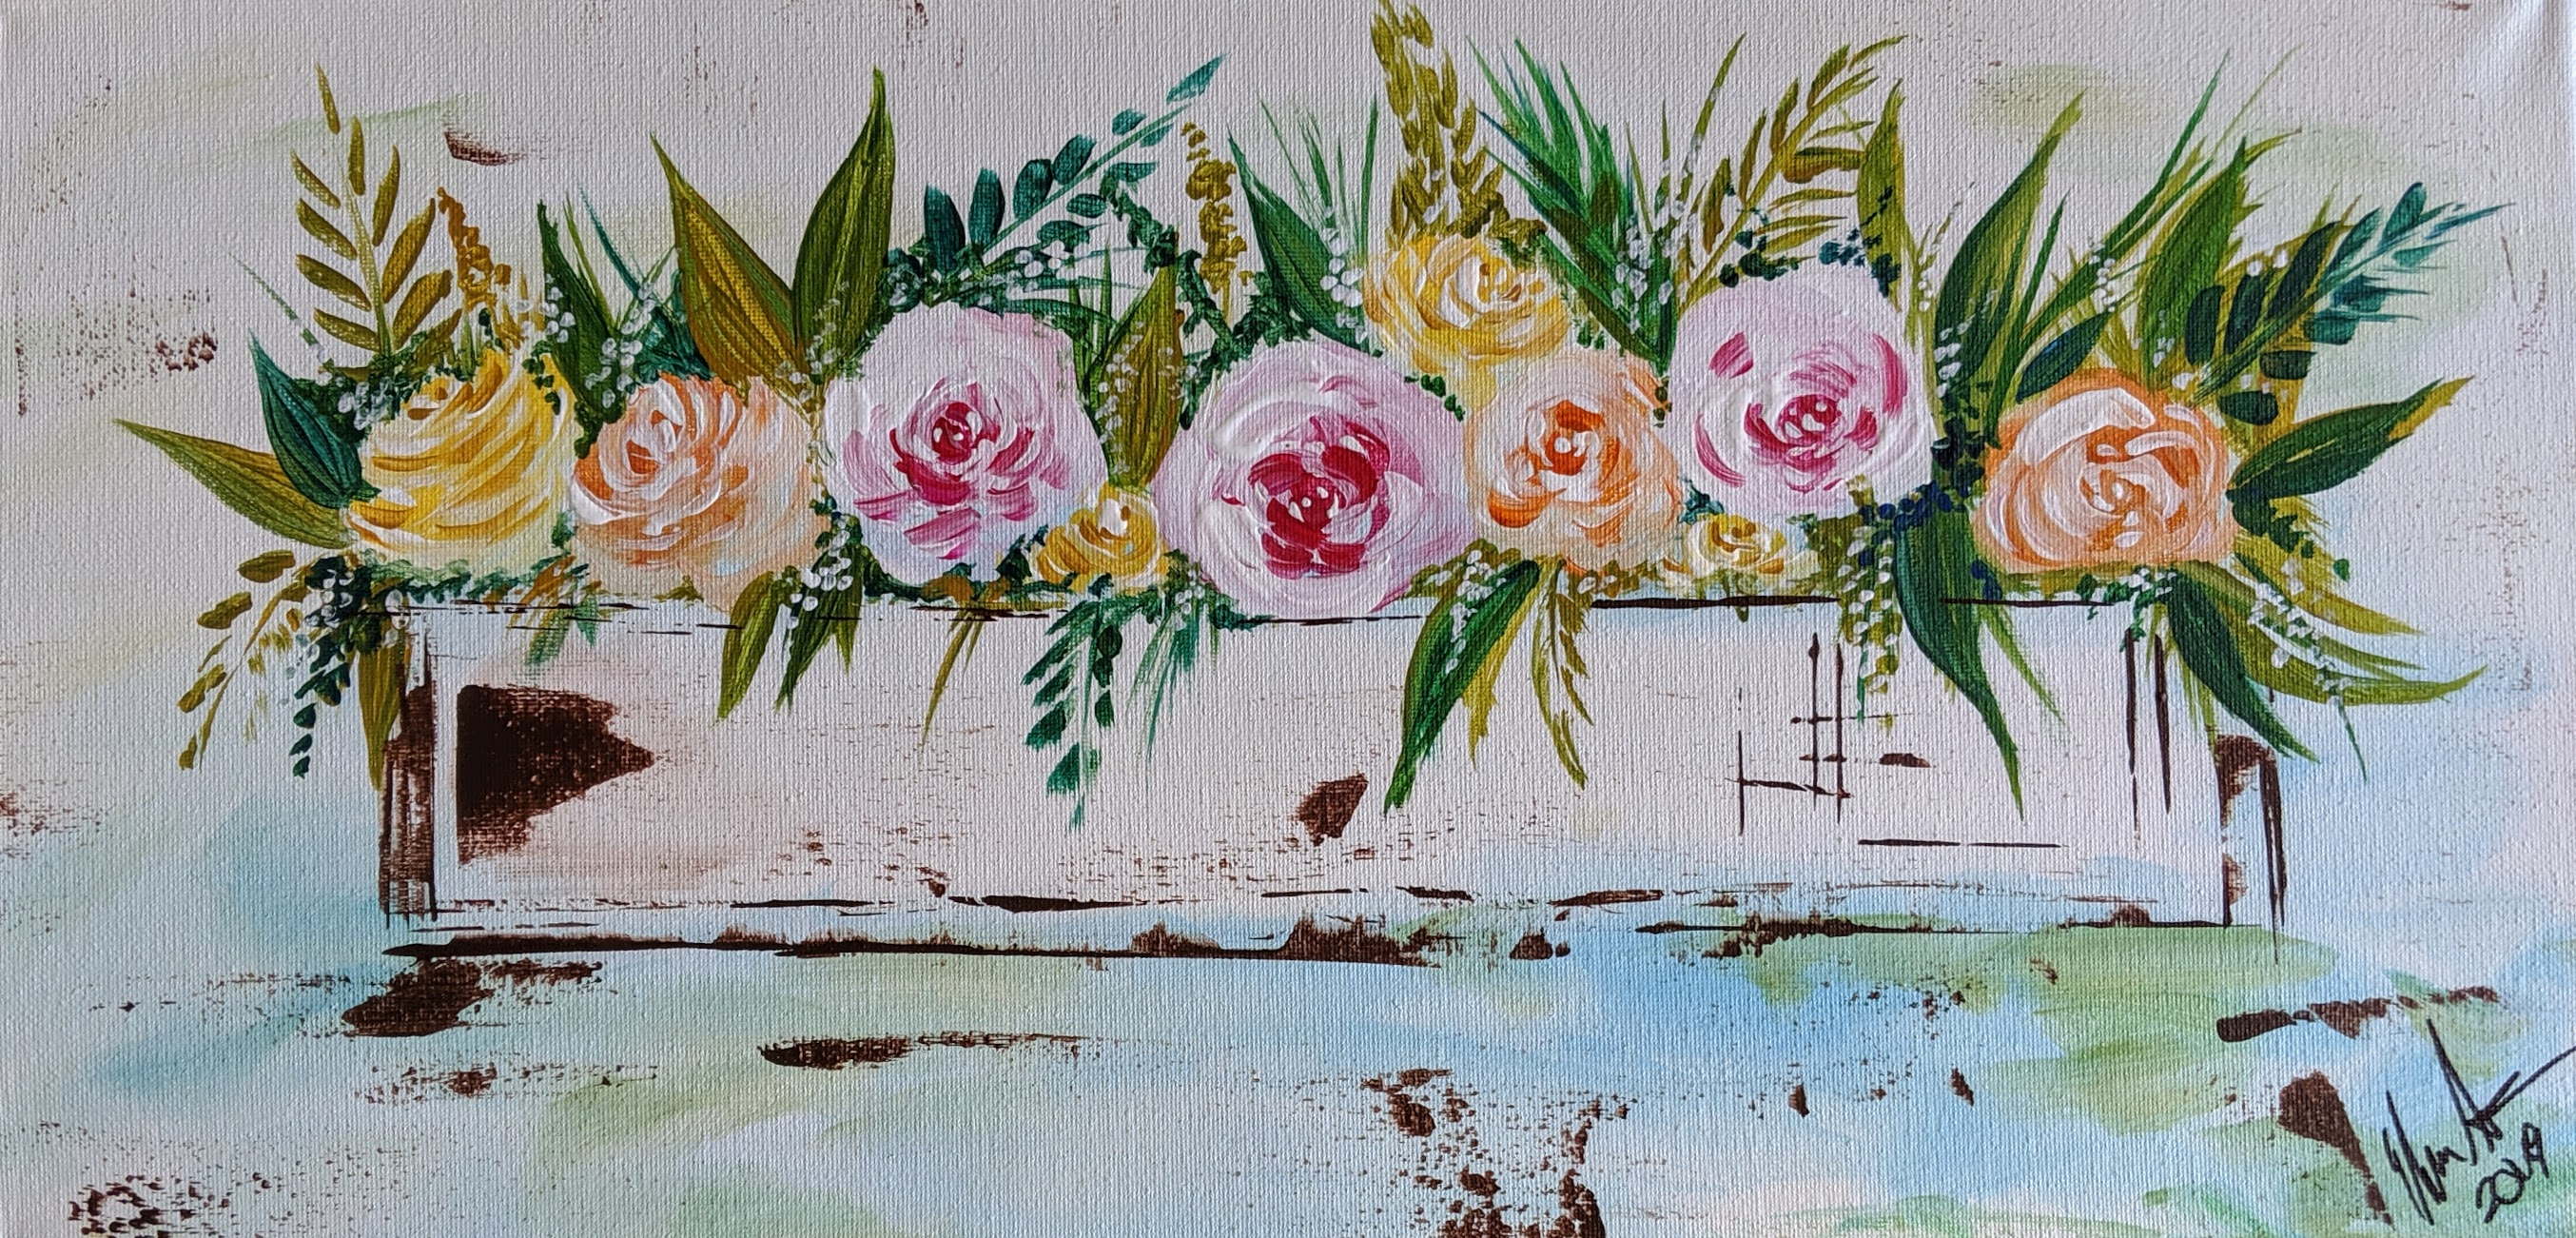 Farmhouse Flower Box on Canvas